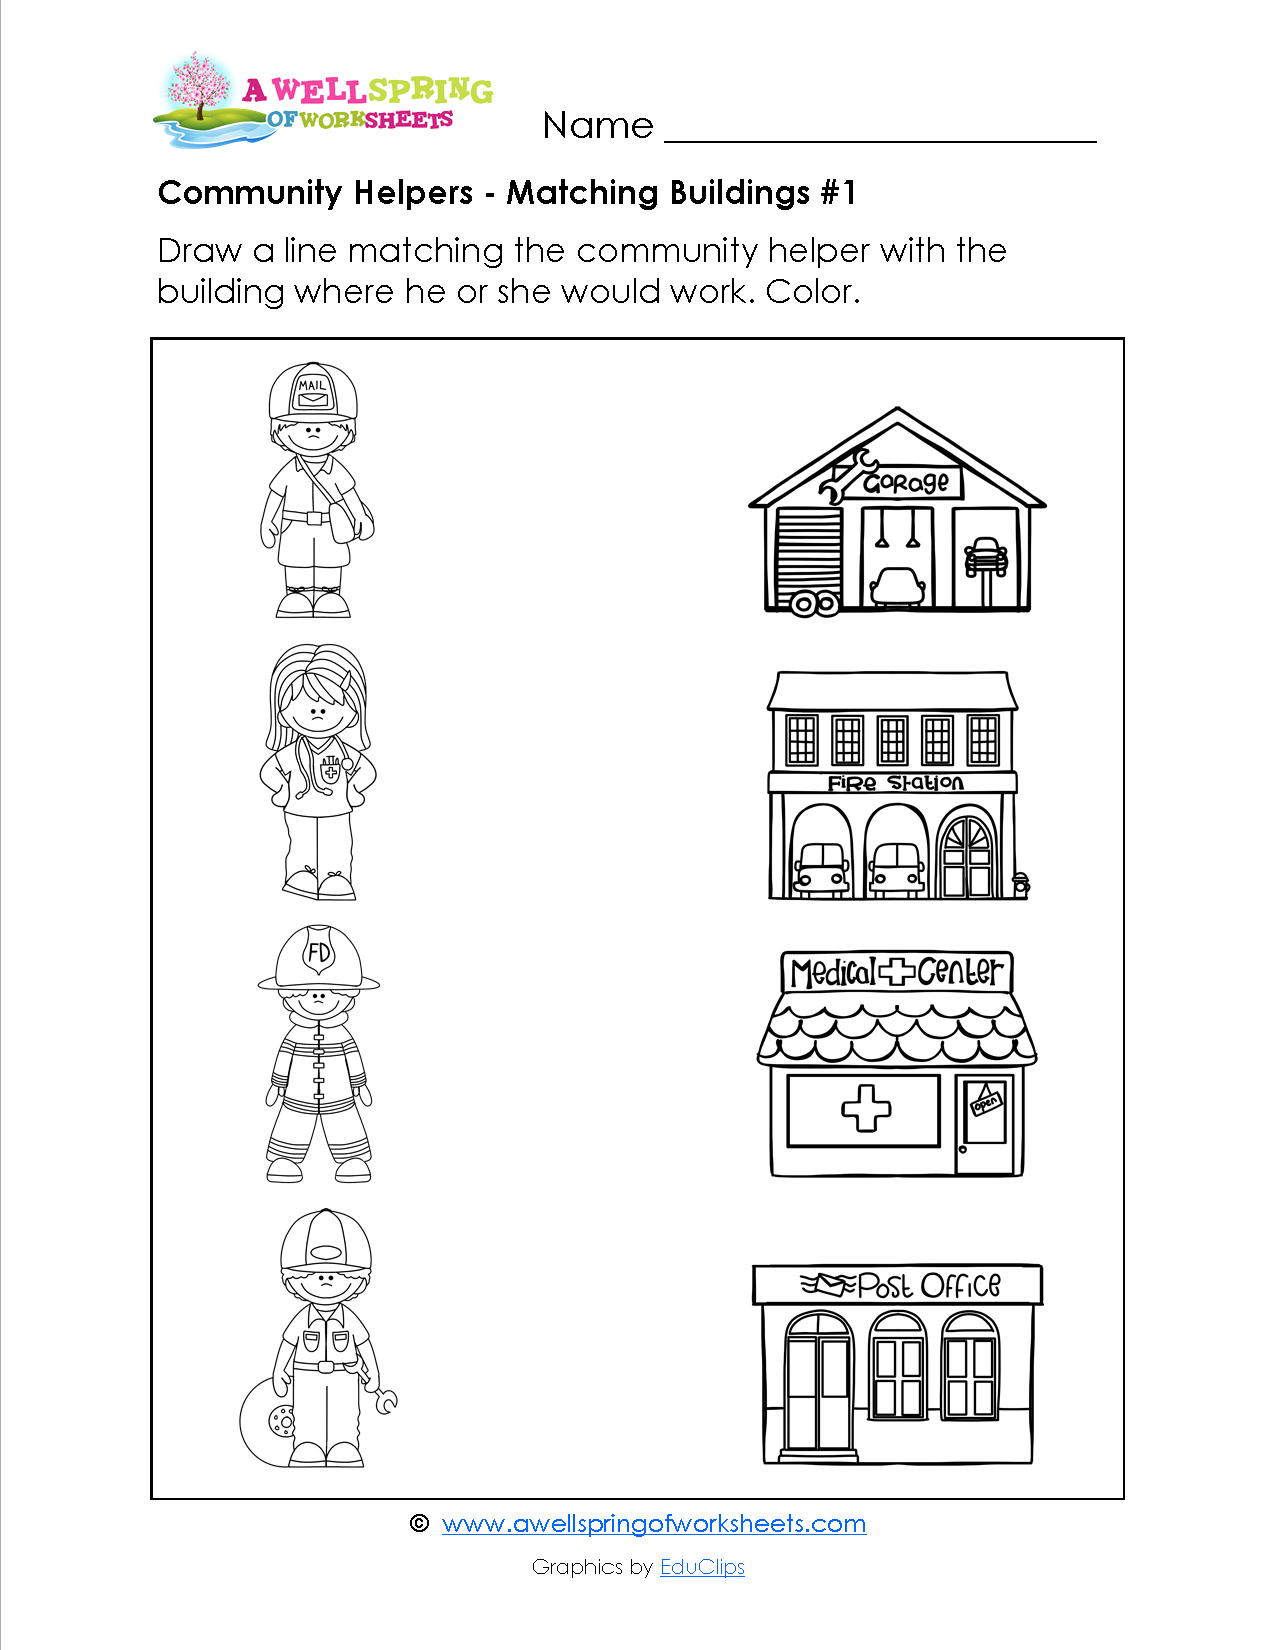 Worksheets Community Helpers Kindergarten Worksheets community helpers matching worksheets in these kids draw a line from the helper